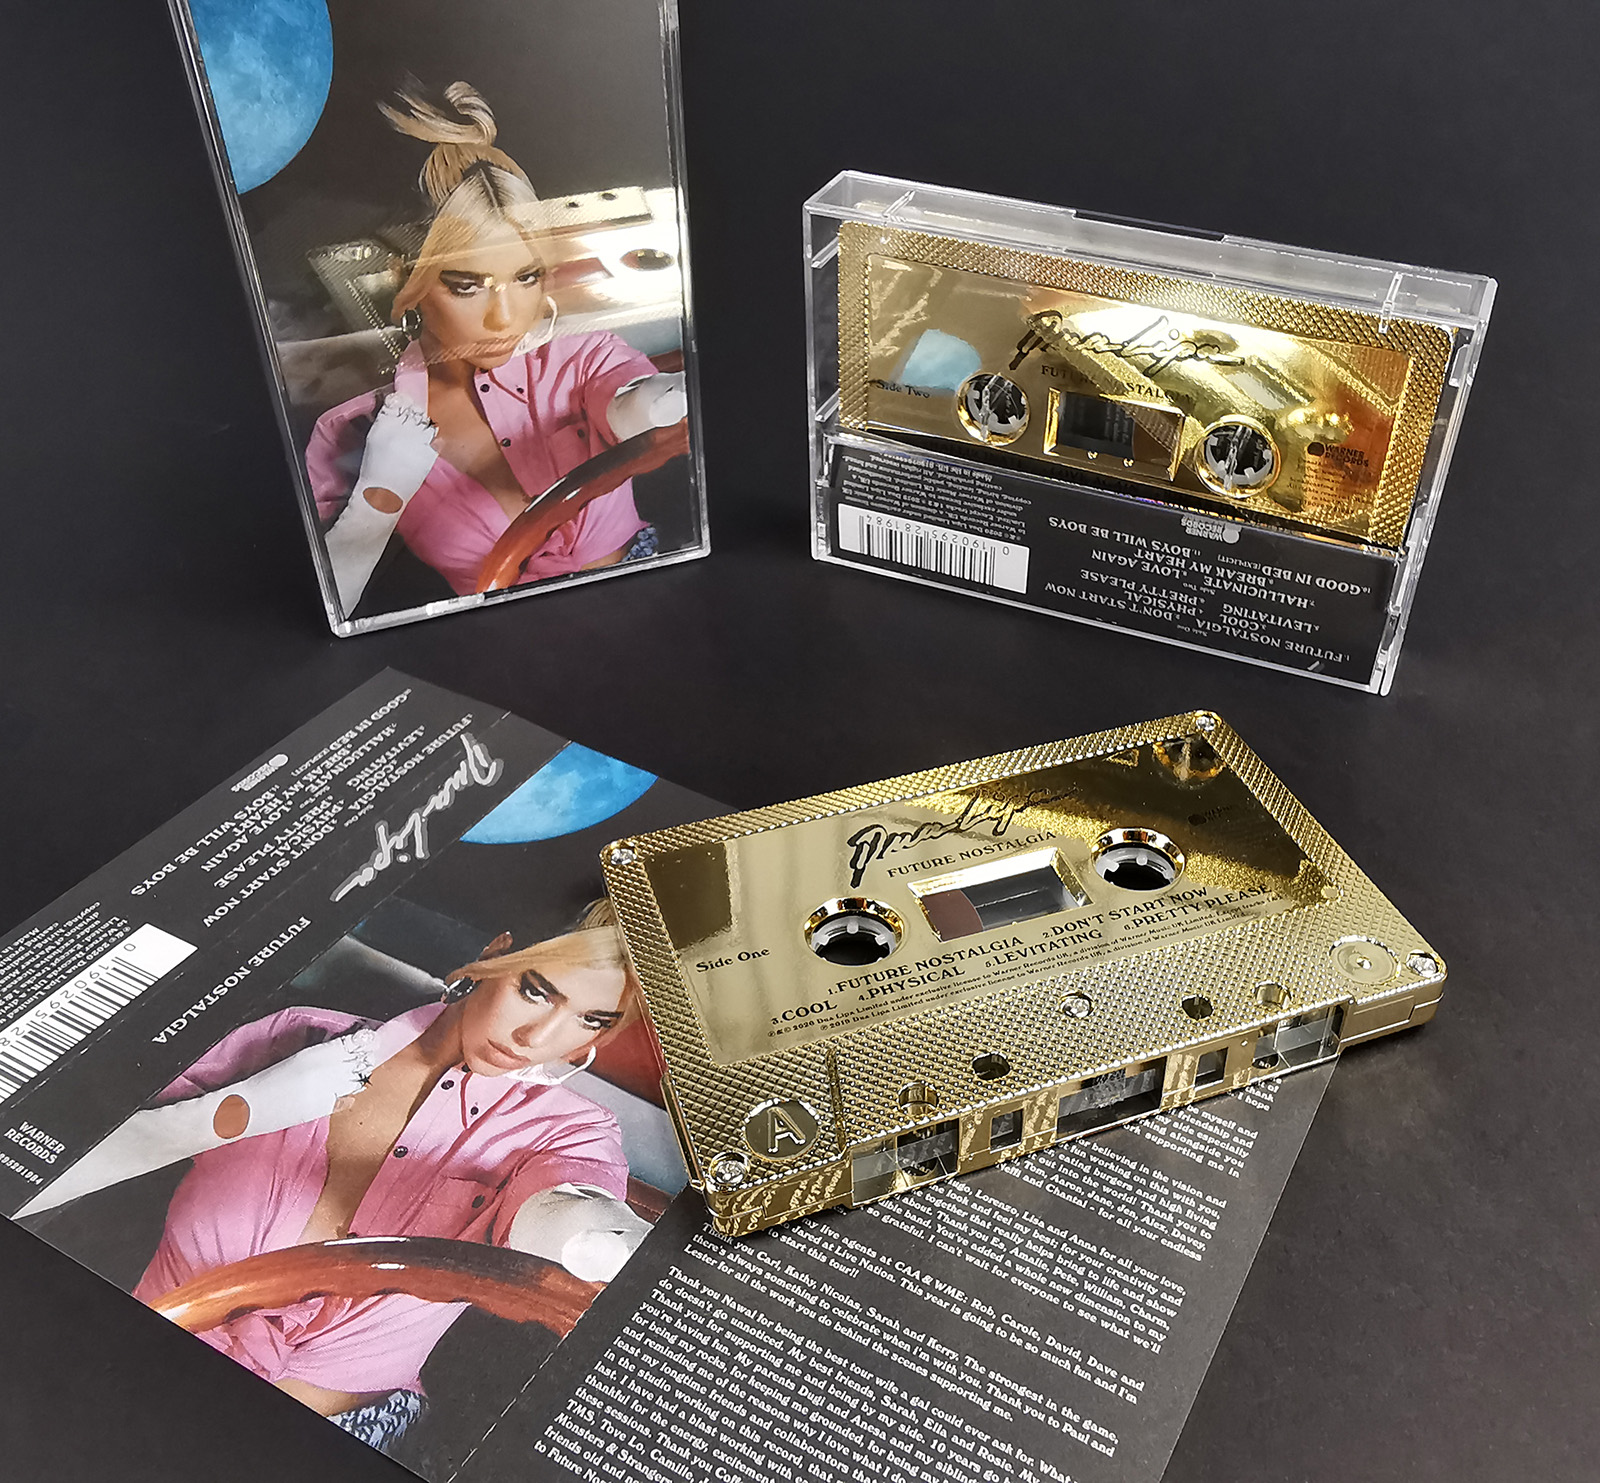 Dua Lipa Future Nostalgia mirror gold cassette tapes with on-body printing